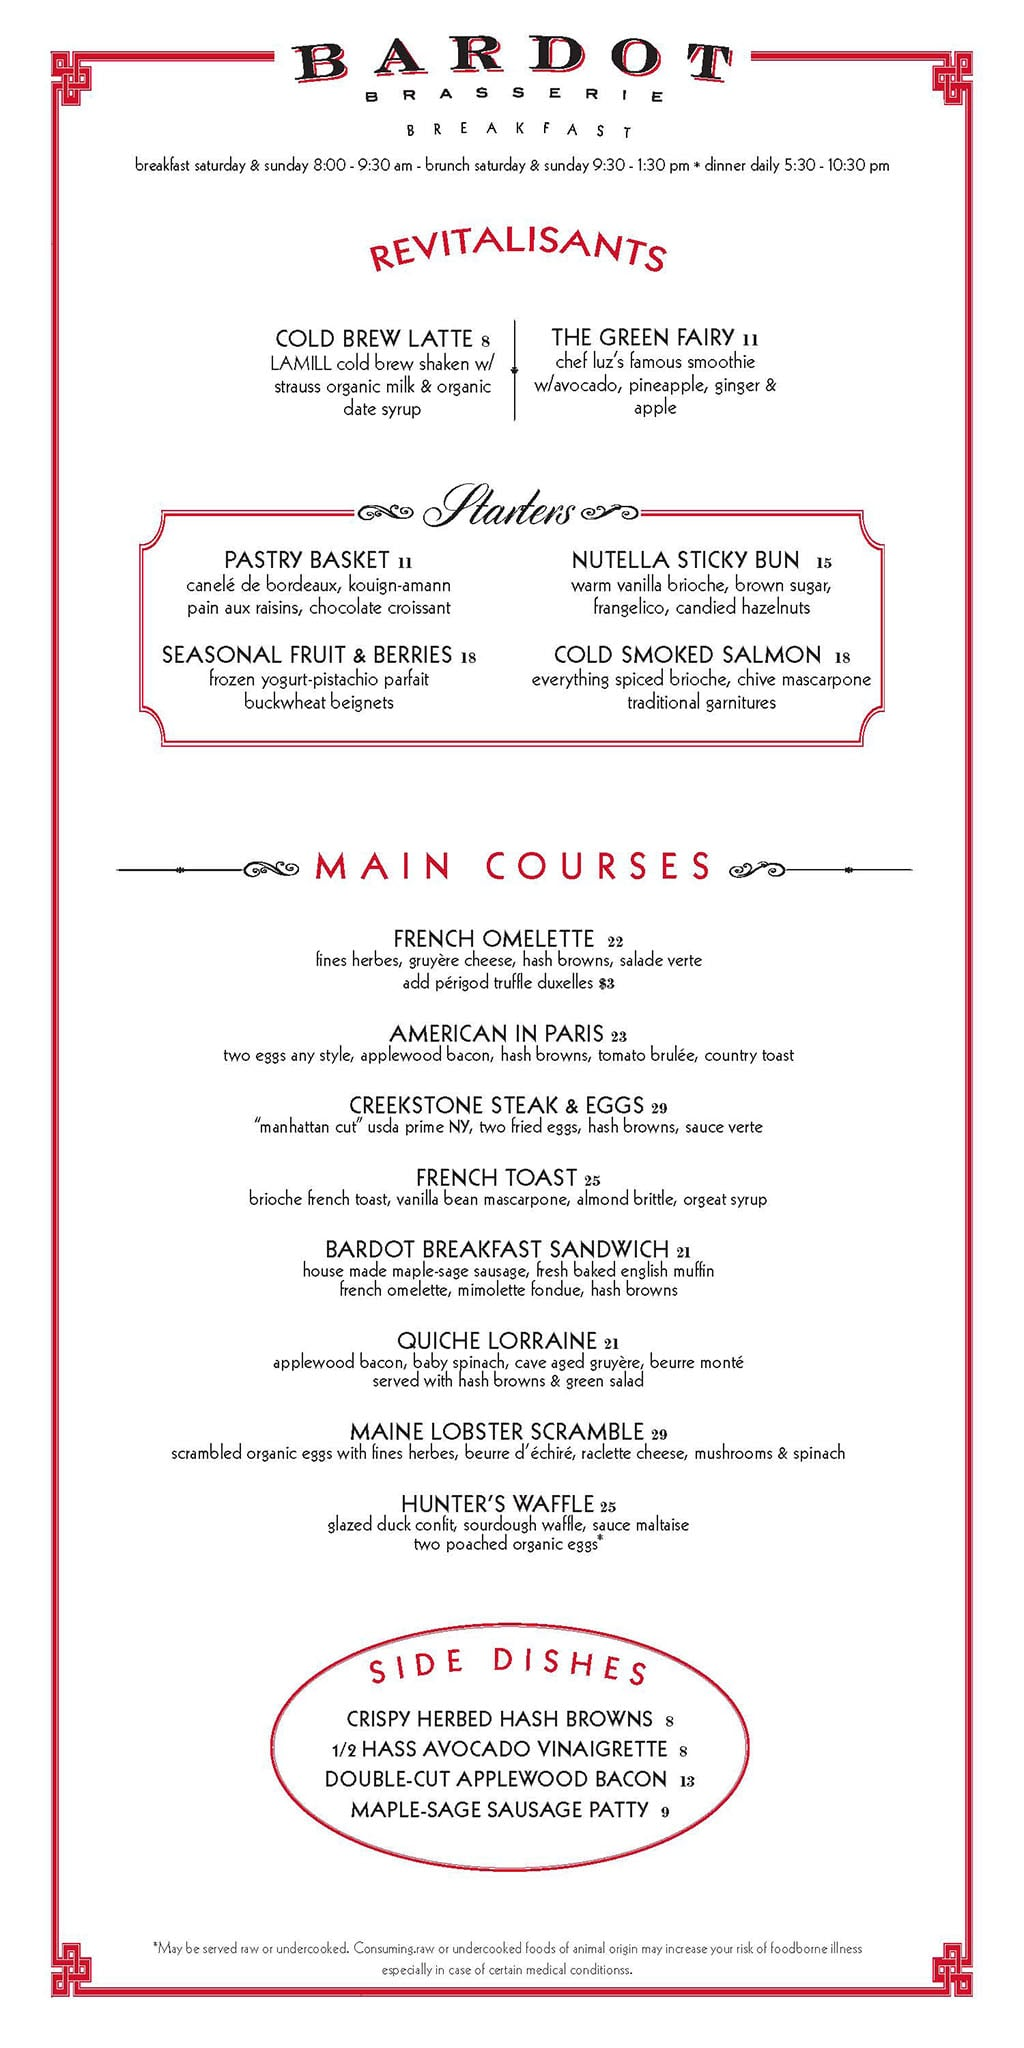 Bardot Brasserie breakfast menu